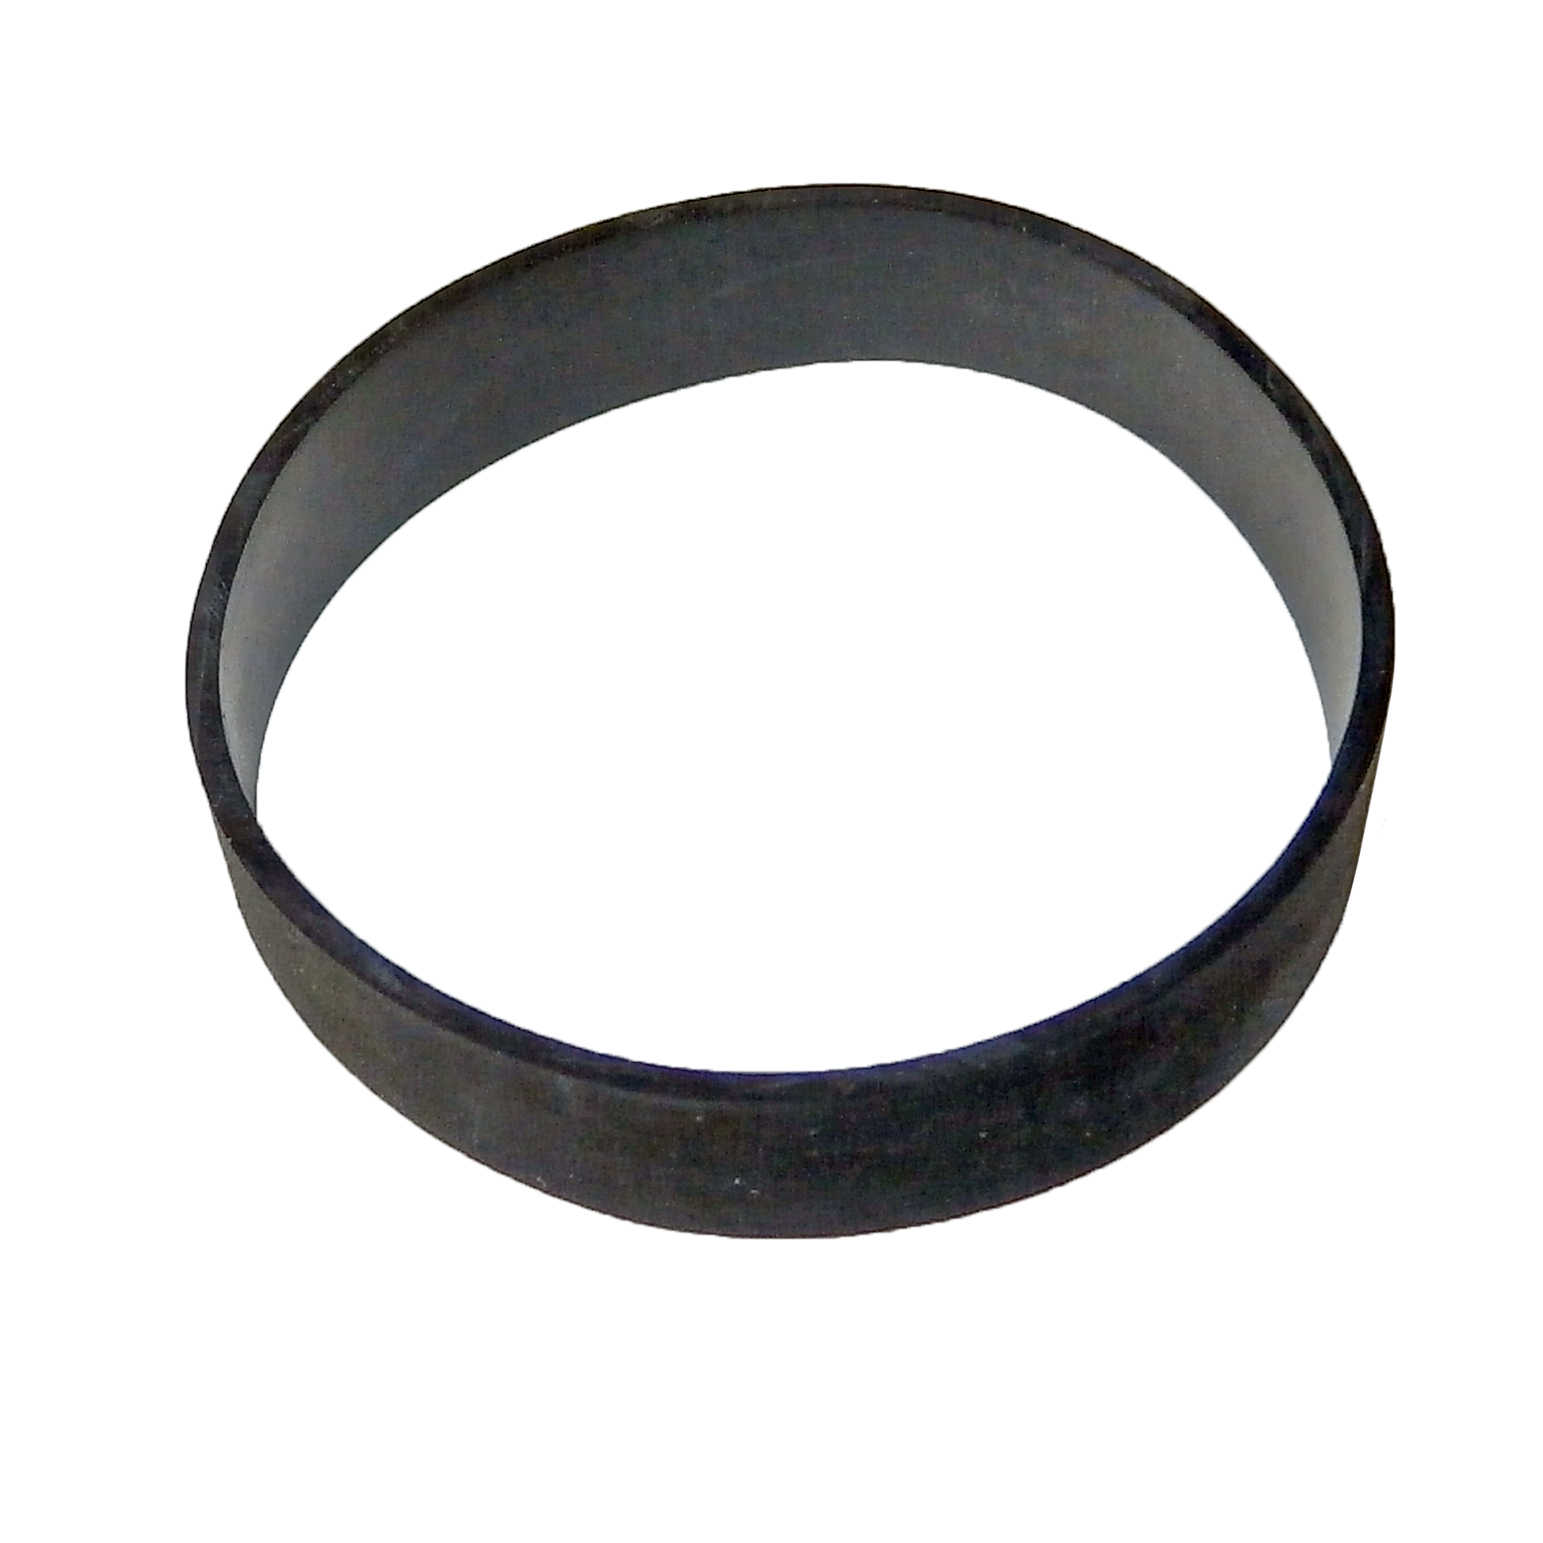 Bostitch Nailers Replacement Check Seal # 103211